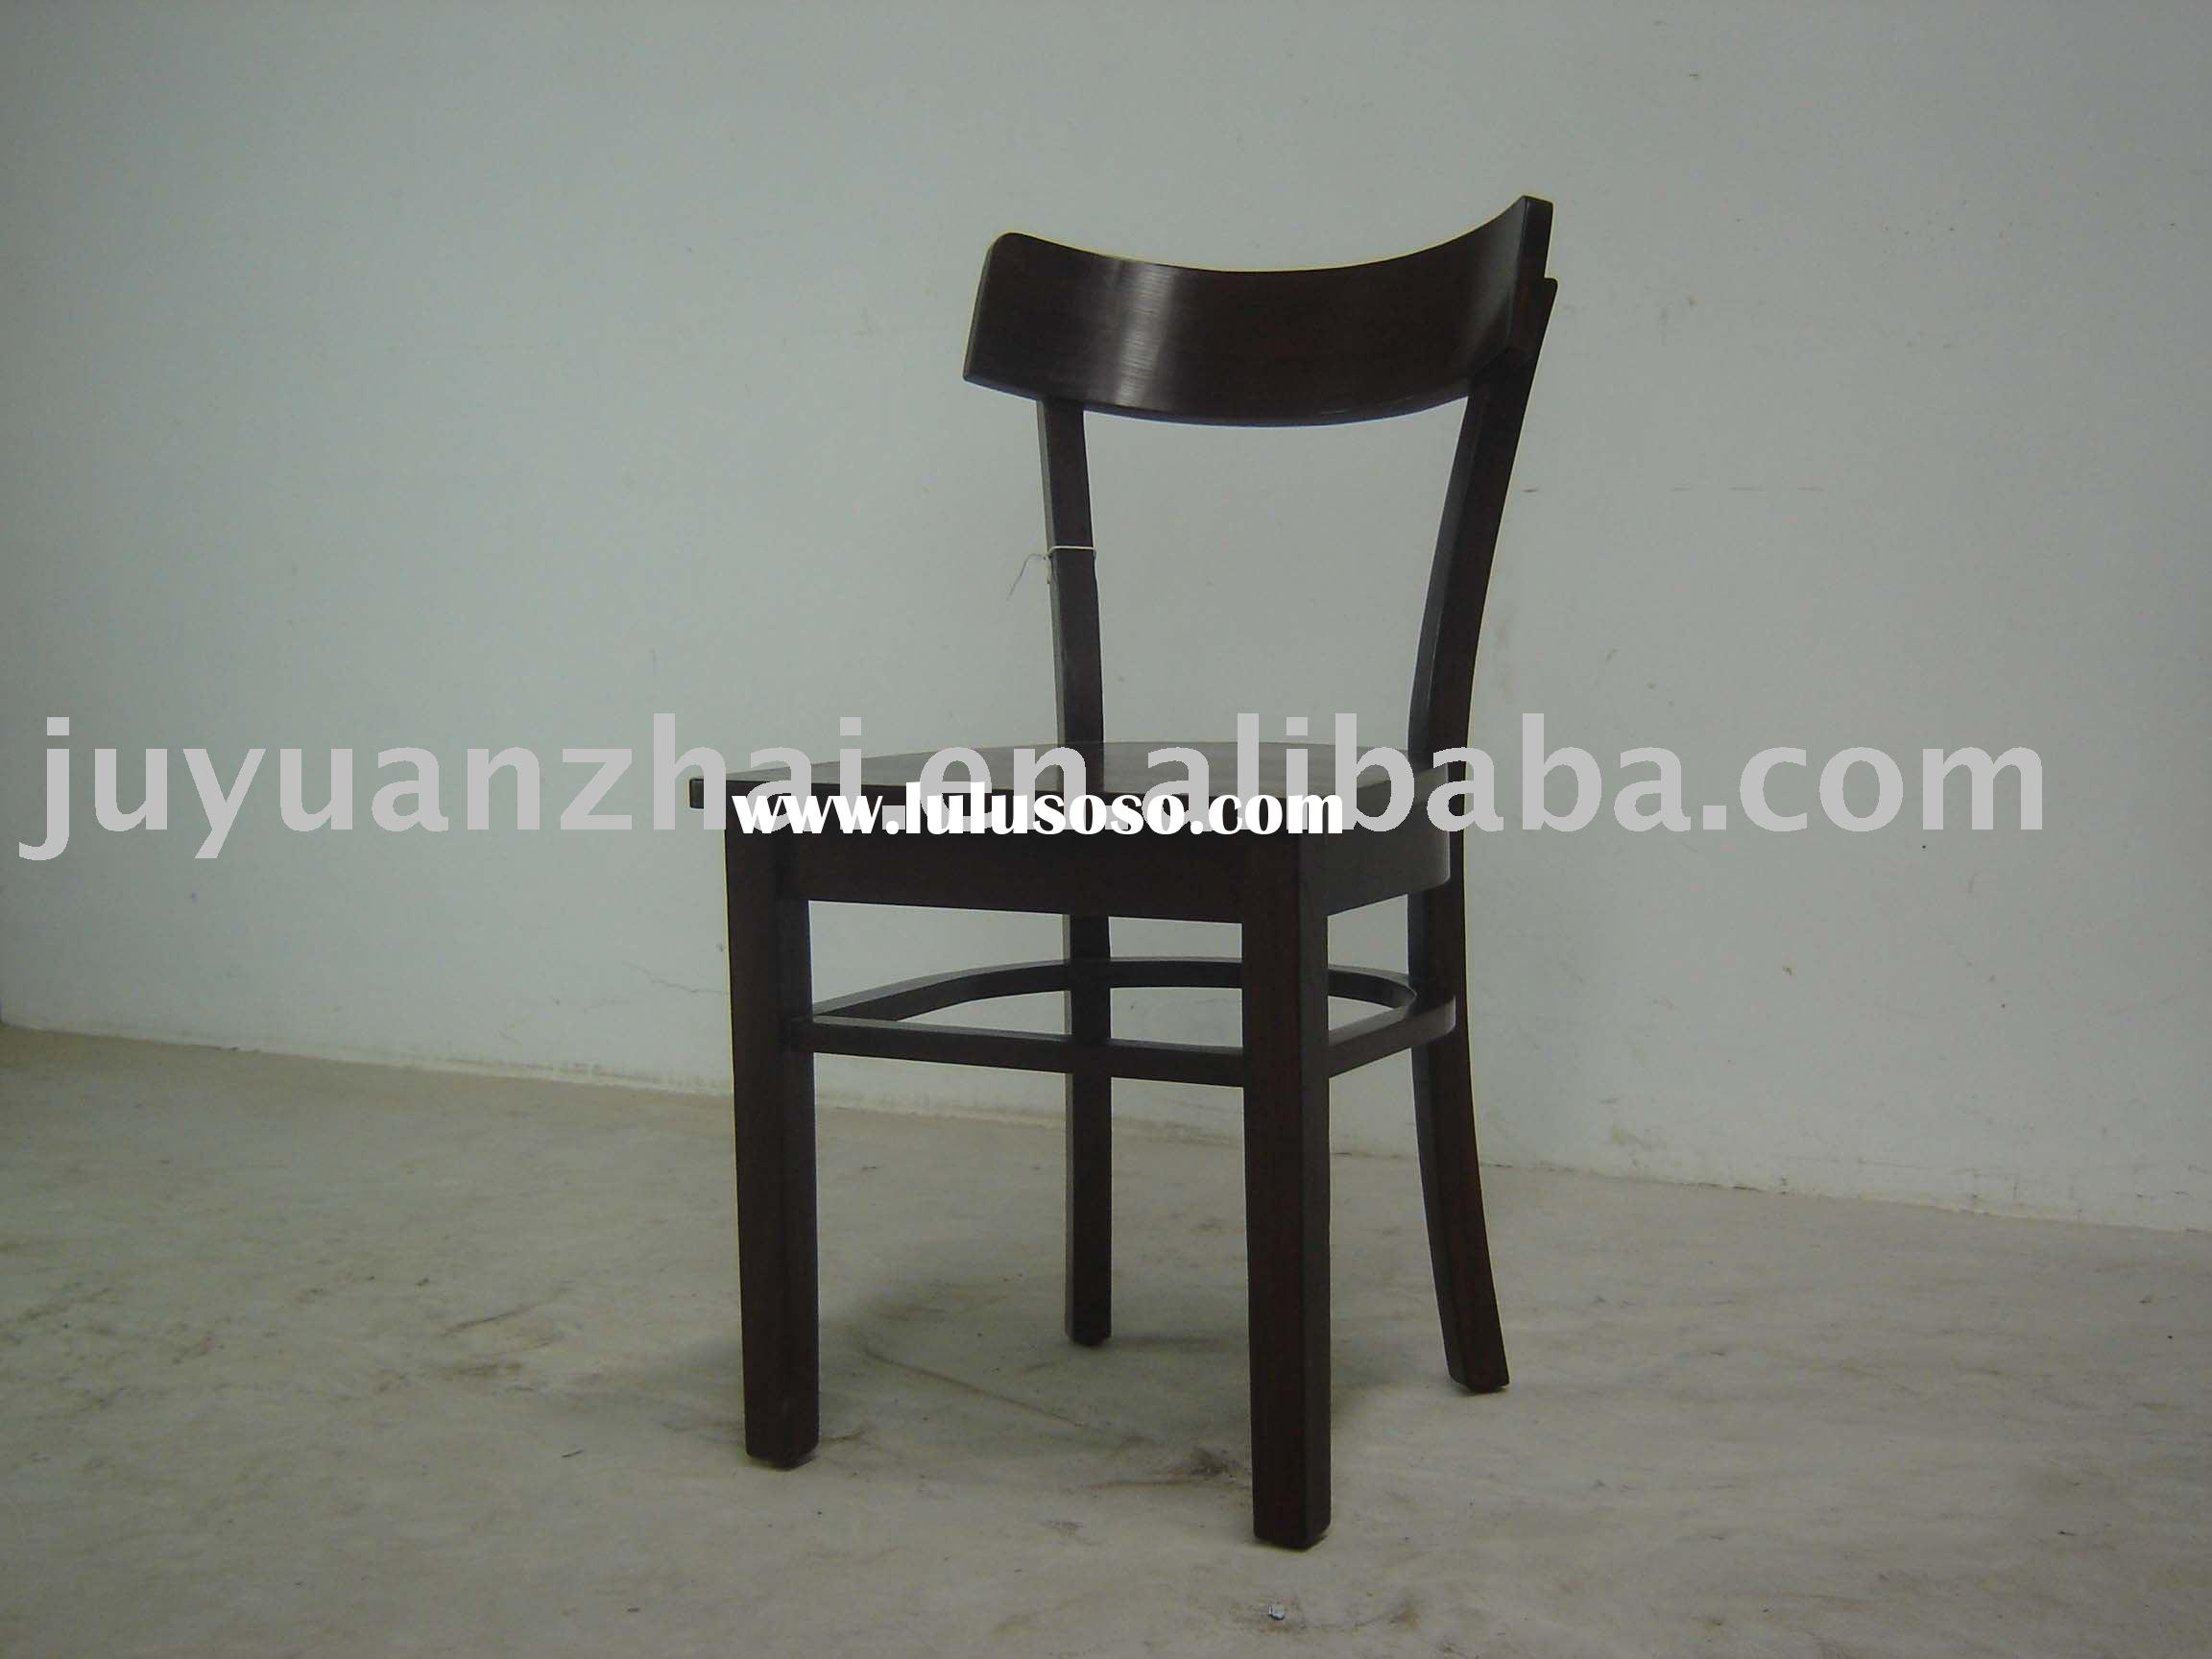 Antique furniture-dinner chair